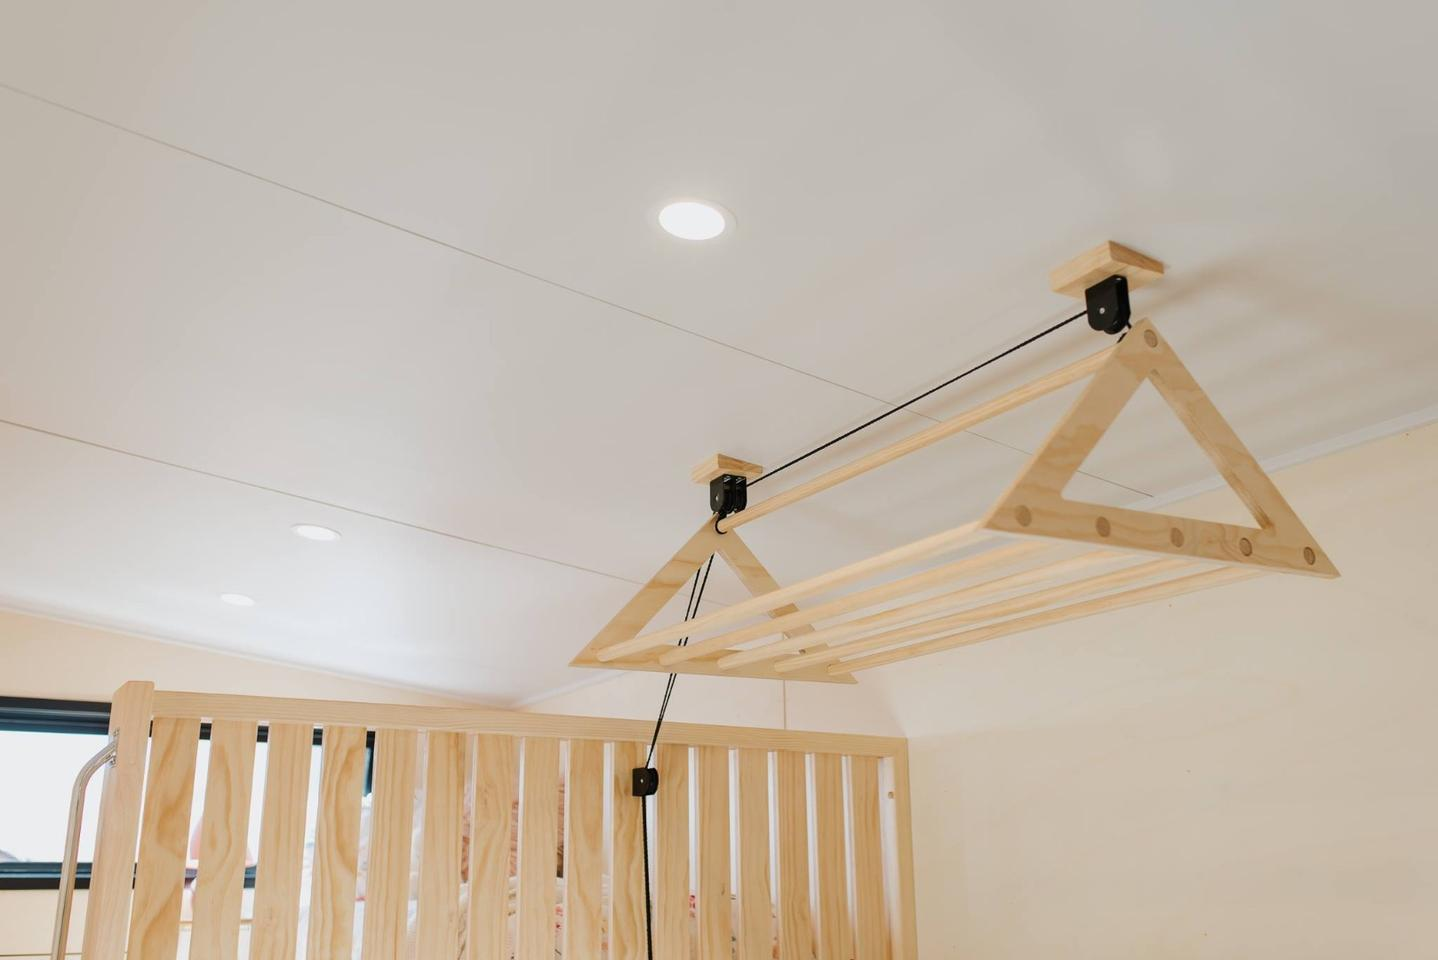 La Sombra Tiny House includes a neat little clothes airer on a pulley system